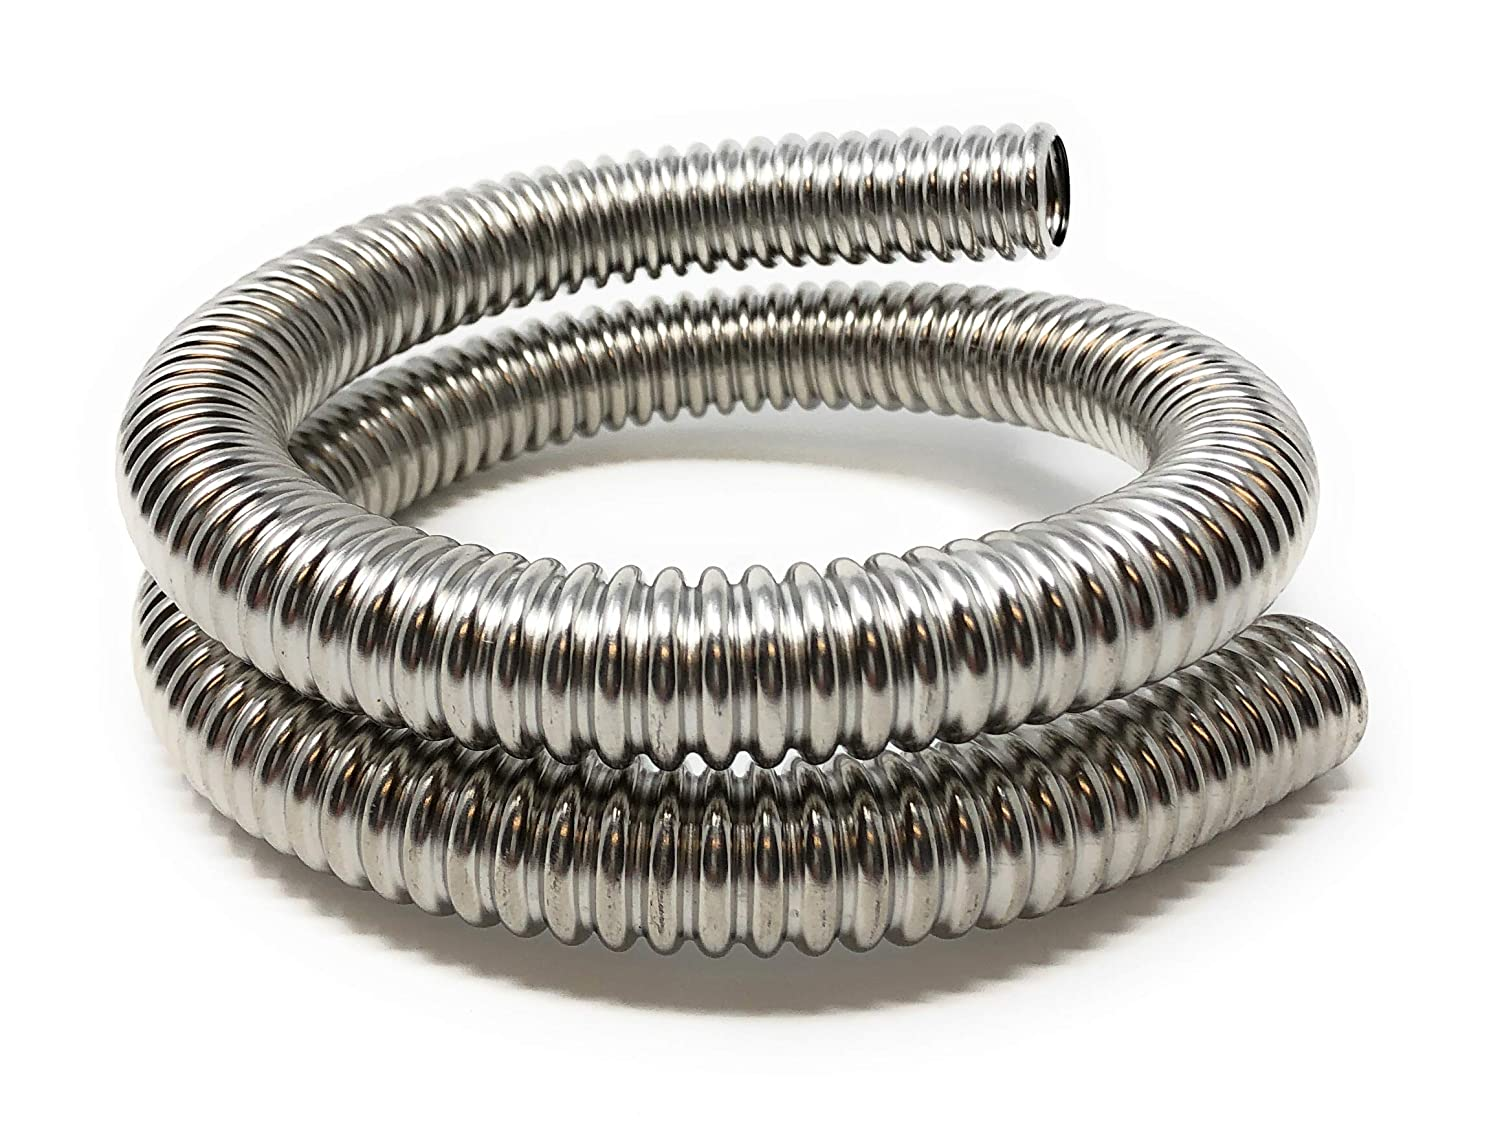 Stainless Steel Exhaust Flexible Tubing 1//2 inch ID x 2 foot length